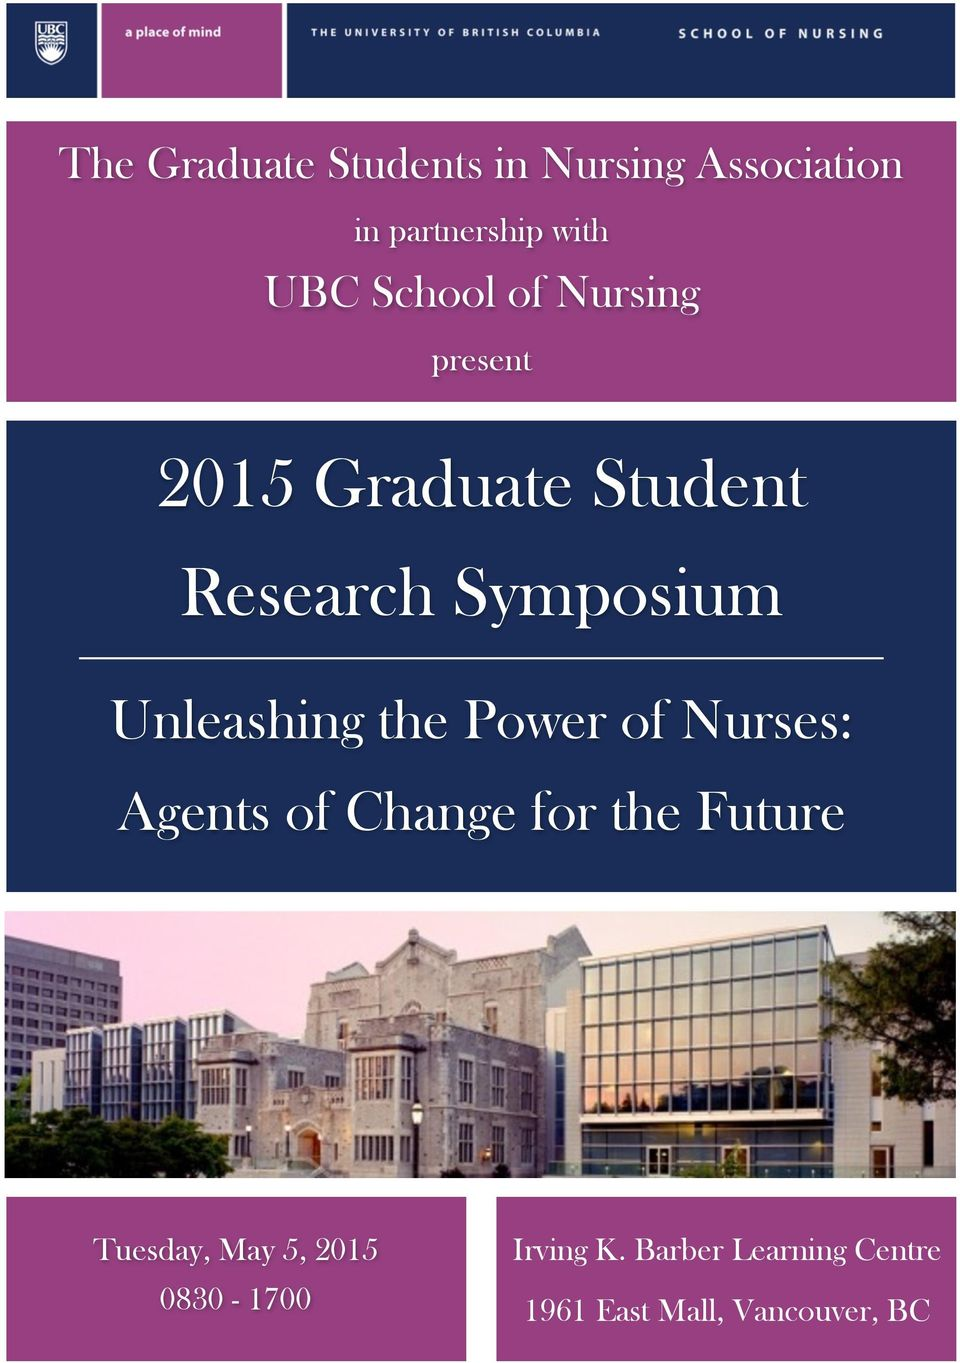 Unleashing the Power of Nurses: Agents of Change for the Future Tuesday,